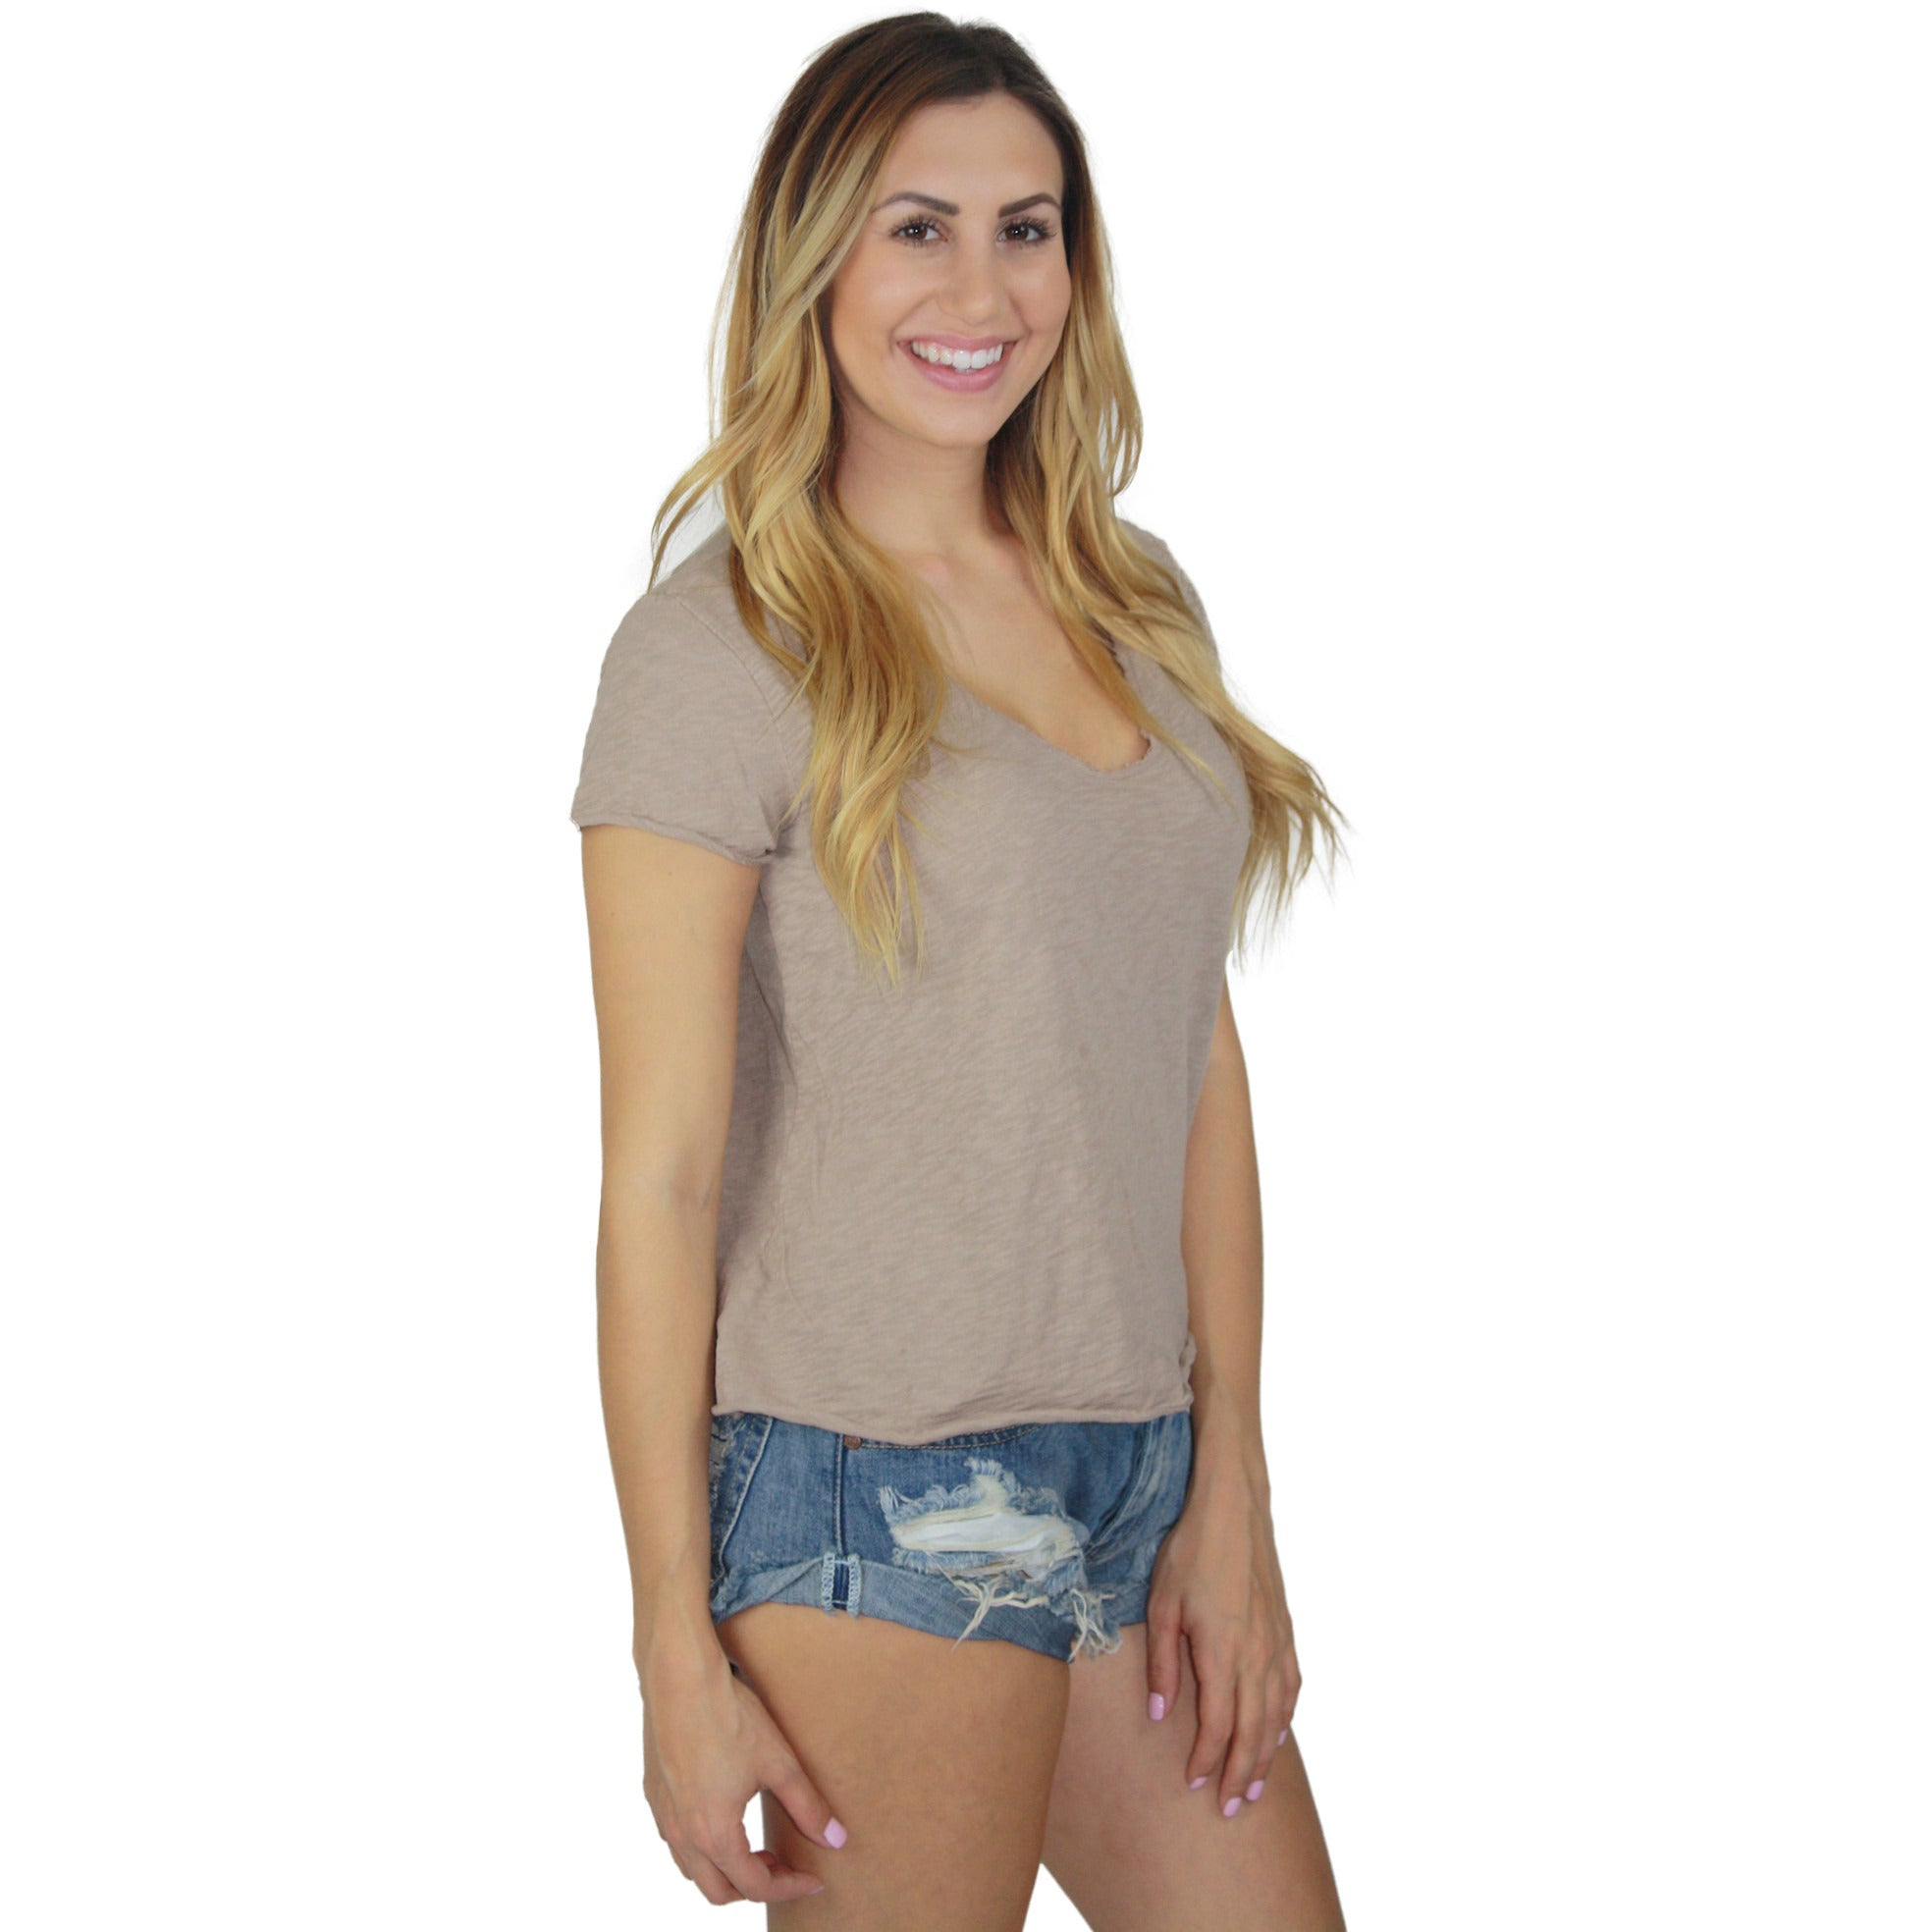 Calissa V Neck Short Sleeve Top in Taupe